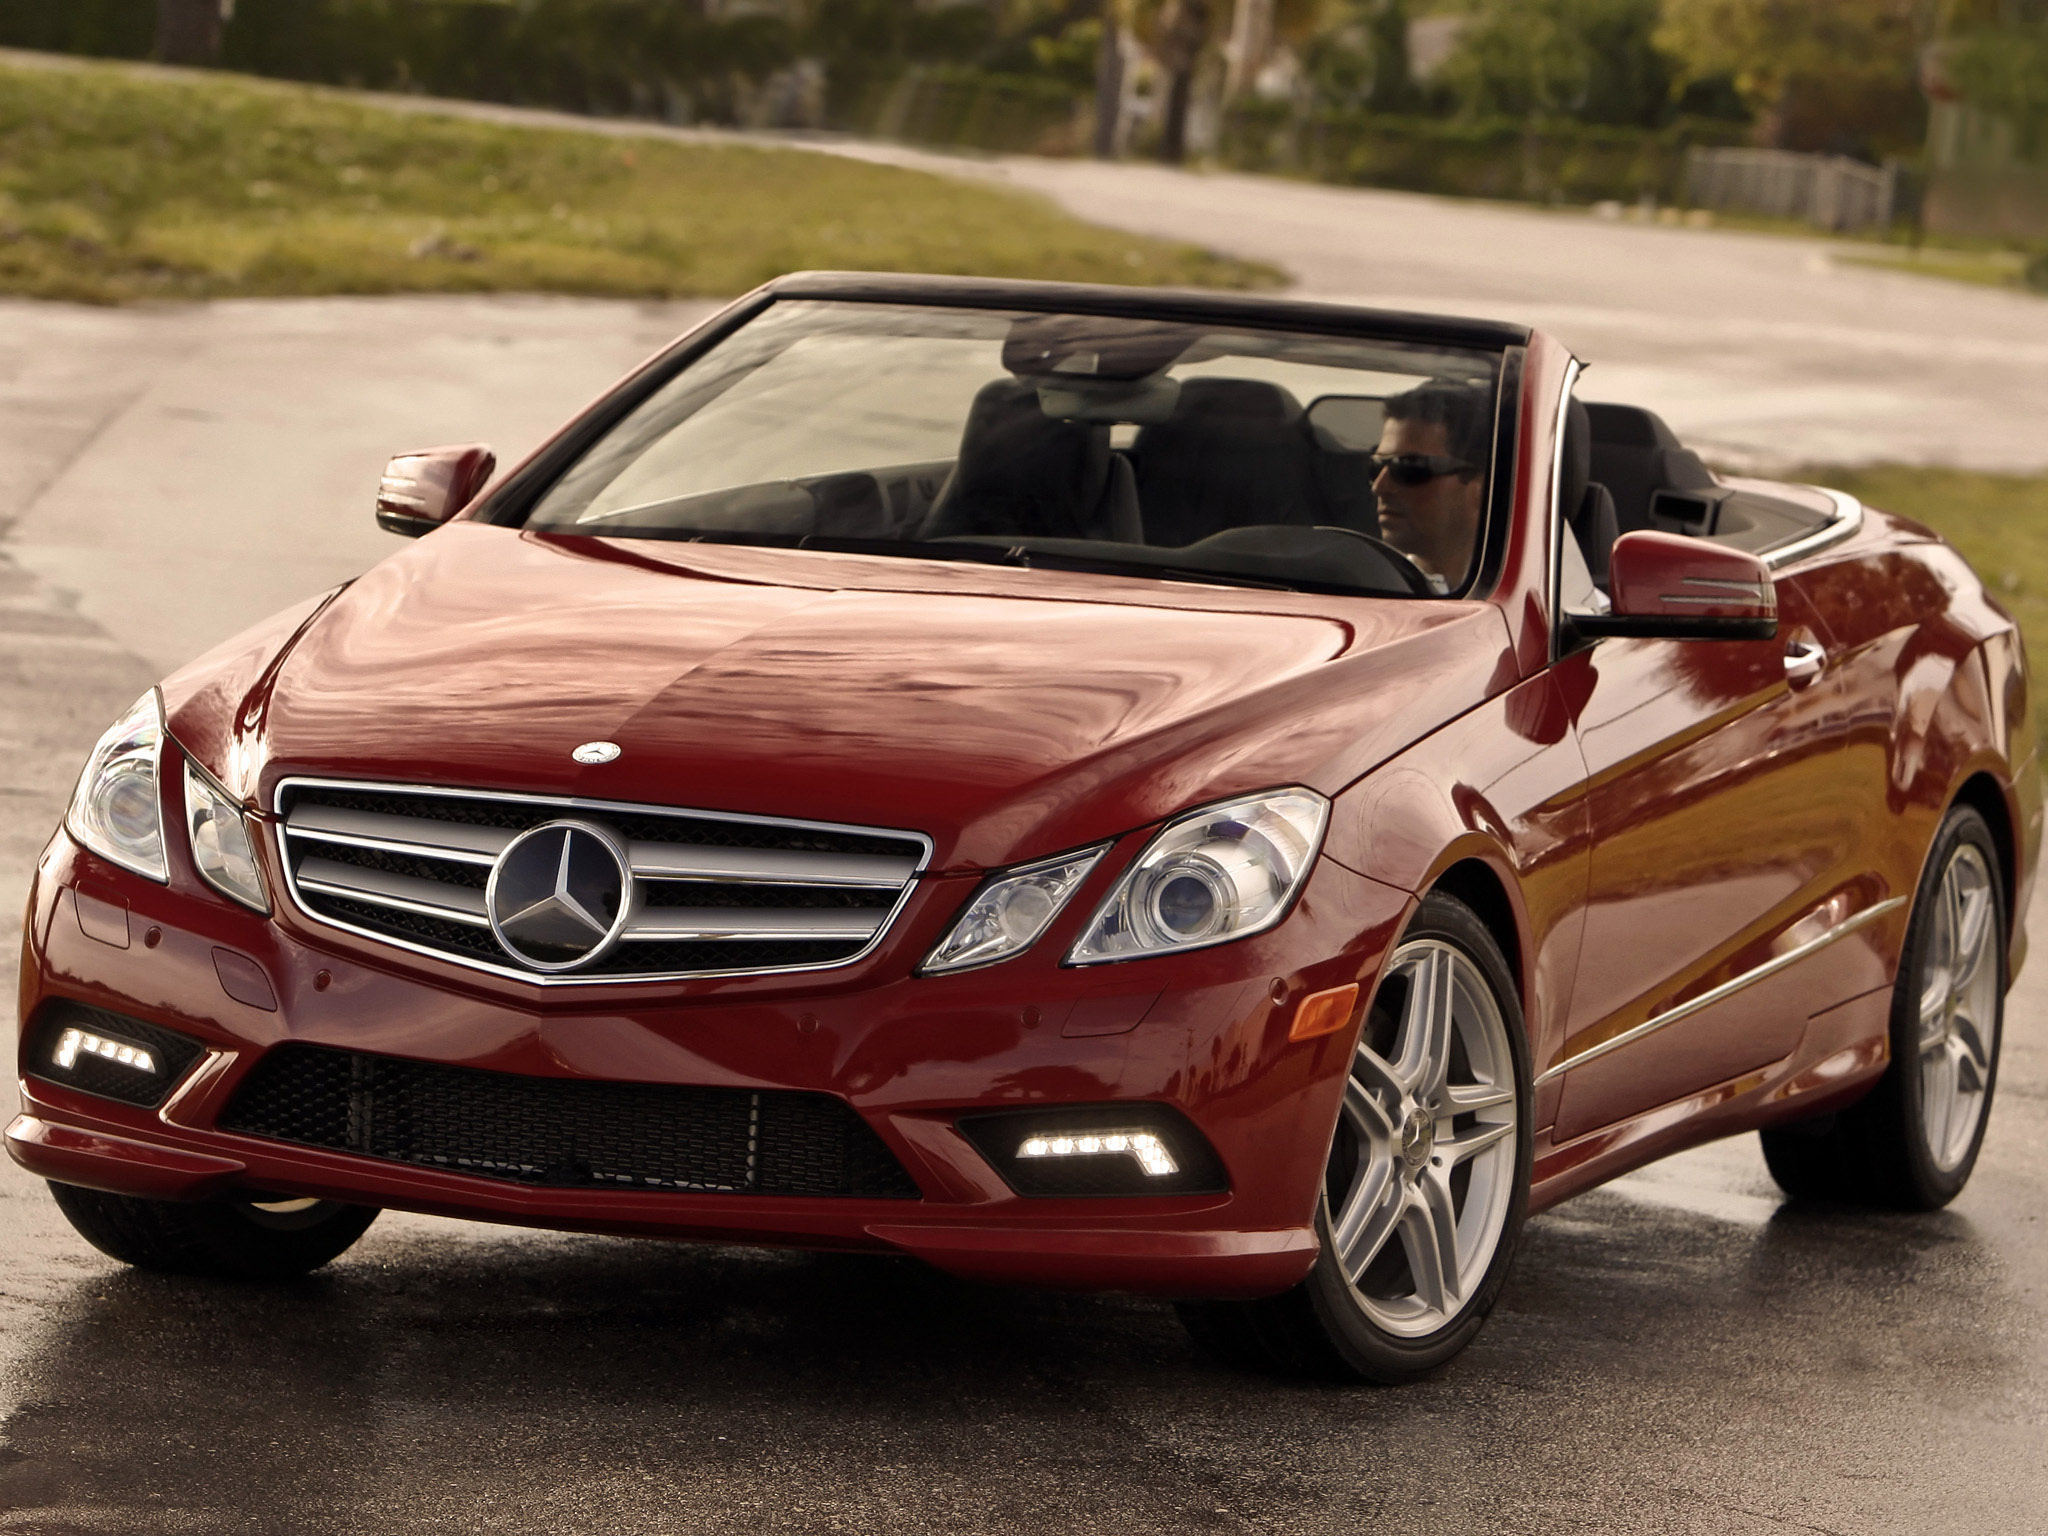 2019 Mercedes Benz E550 Cabriolet photo - 3